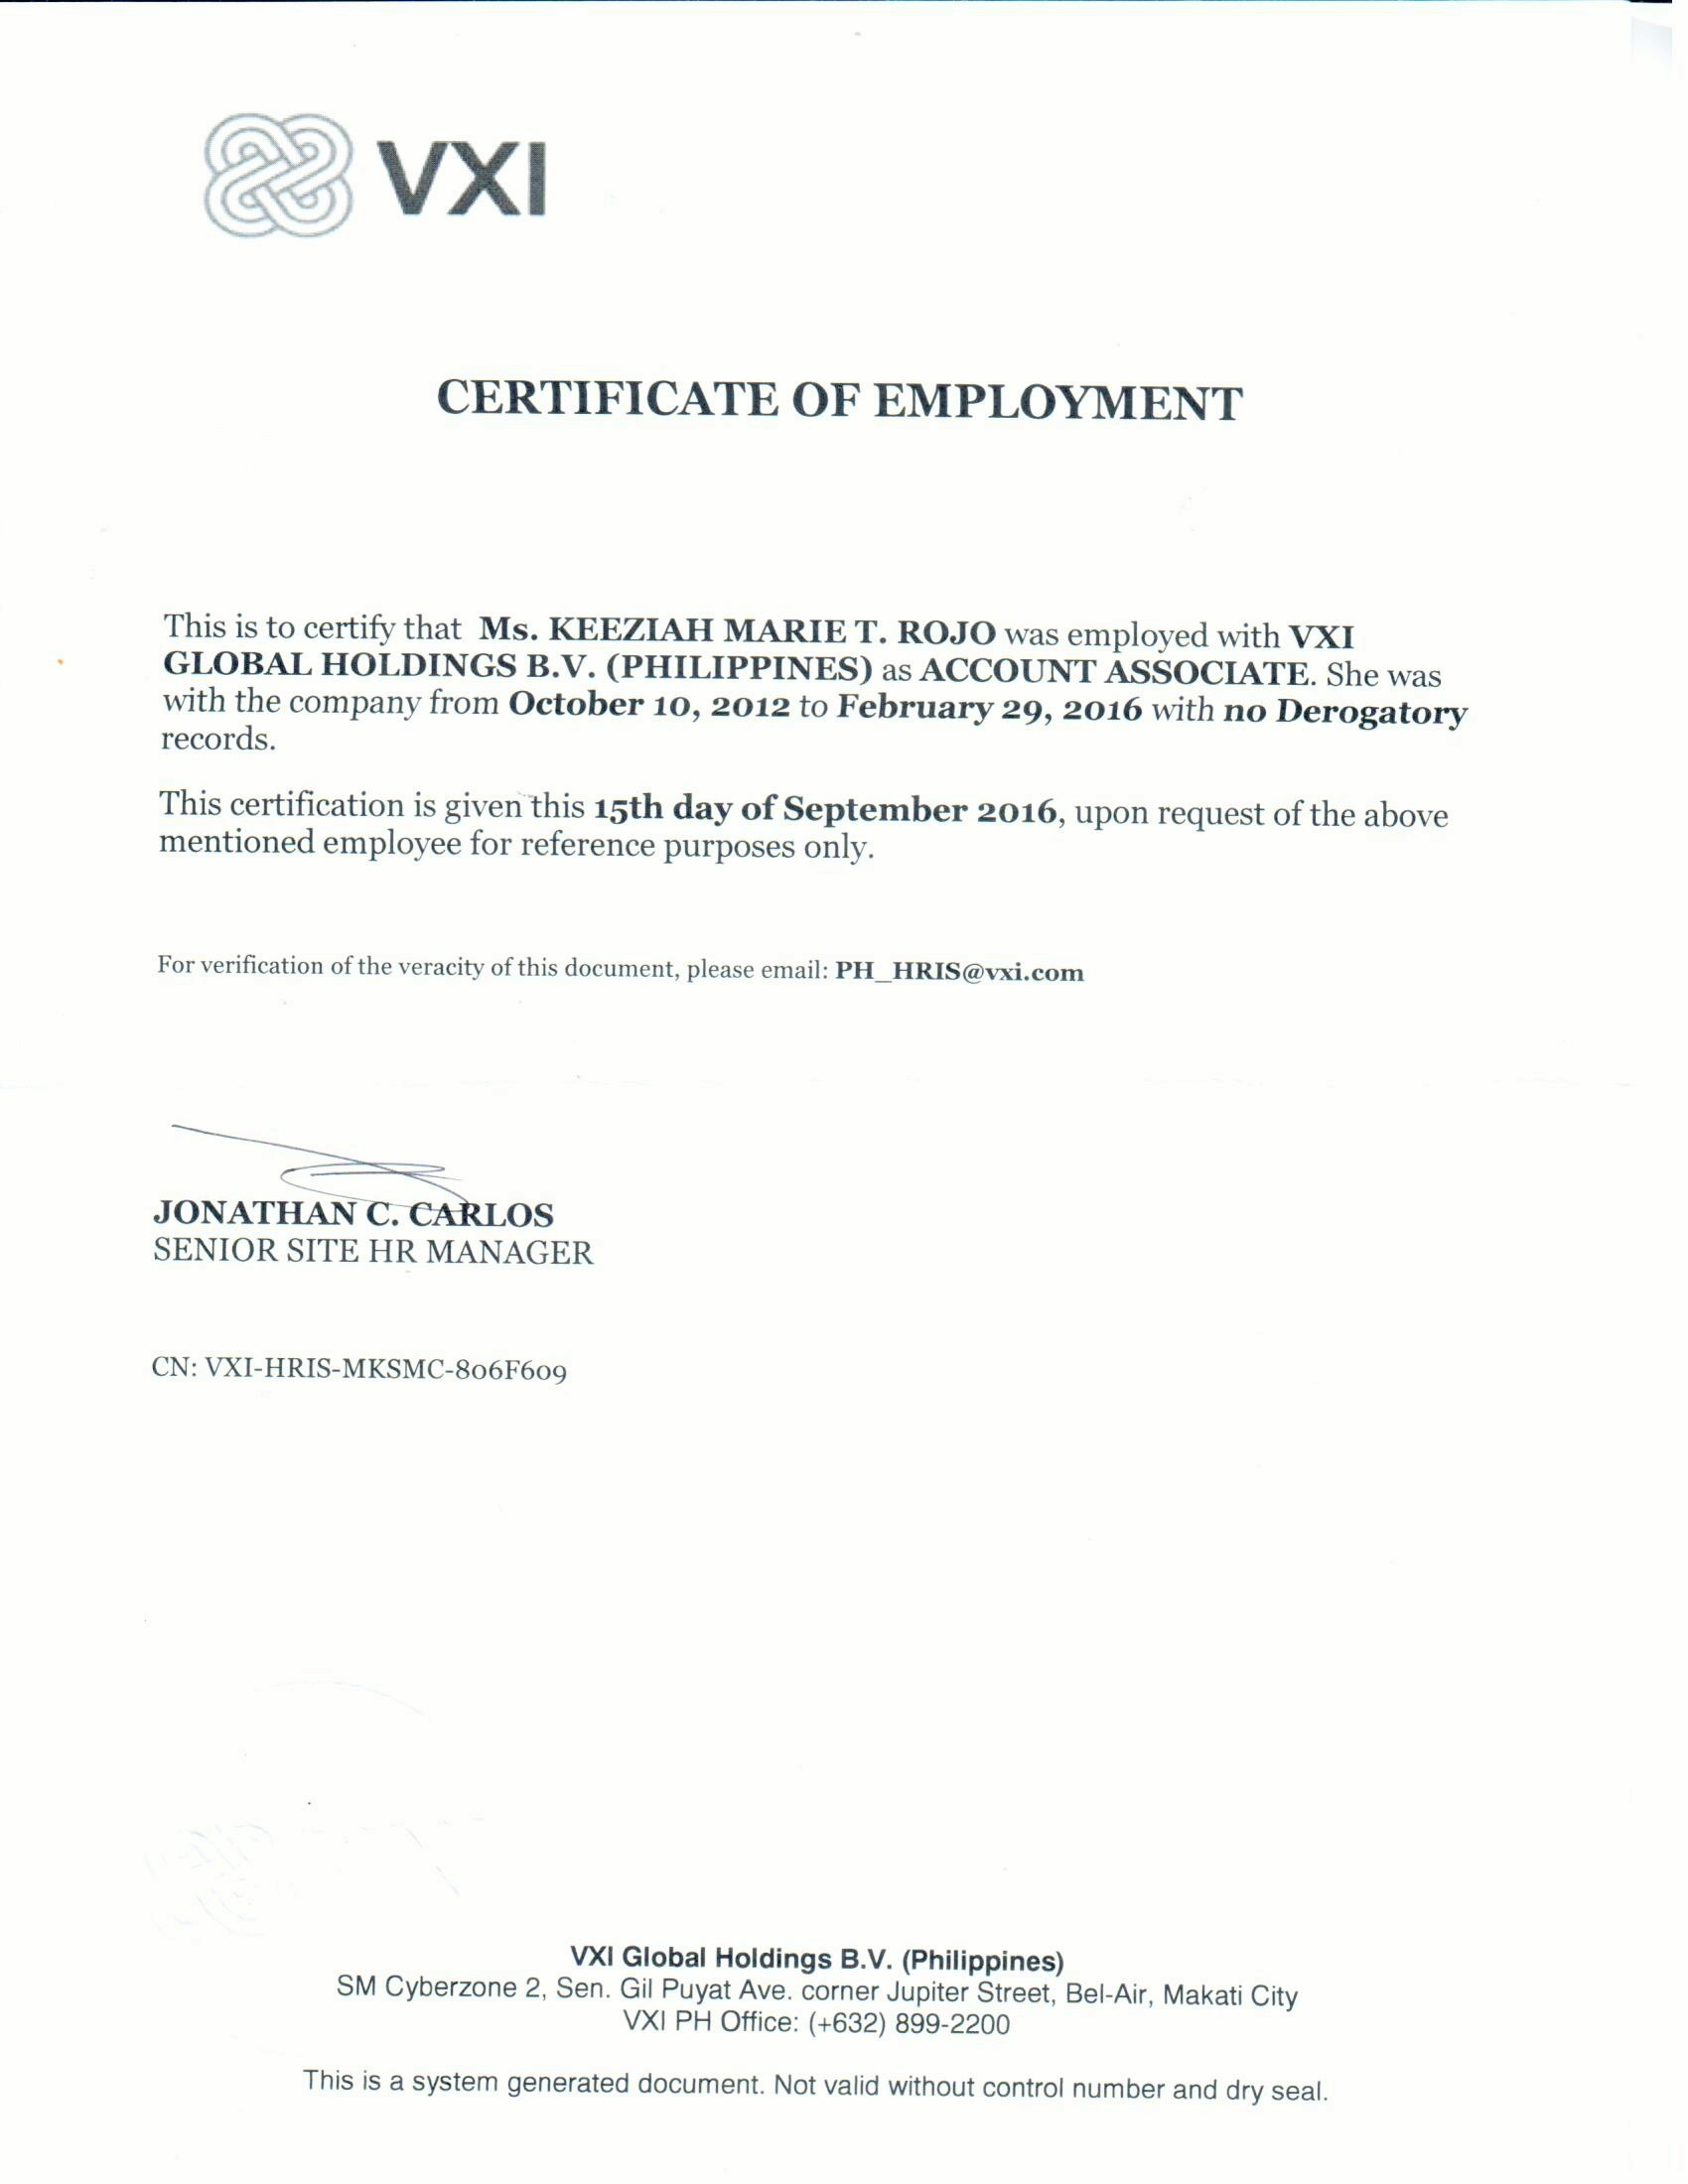 Request for certificate of employment employment letter of keeziah marie rojo baytcom 42527583 1474090224 keeziah marie rojo 35225775 request for certificate of employment request for certificate of employment yadclub Choice Image